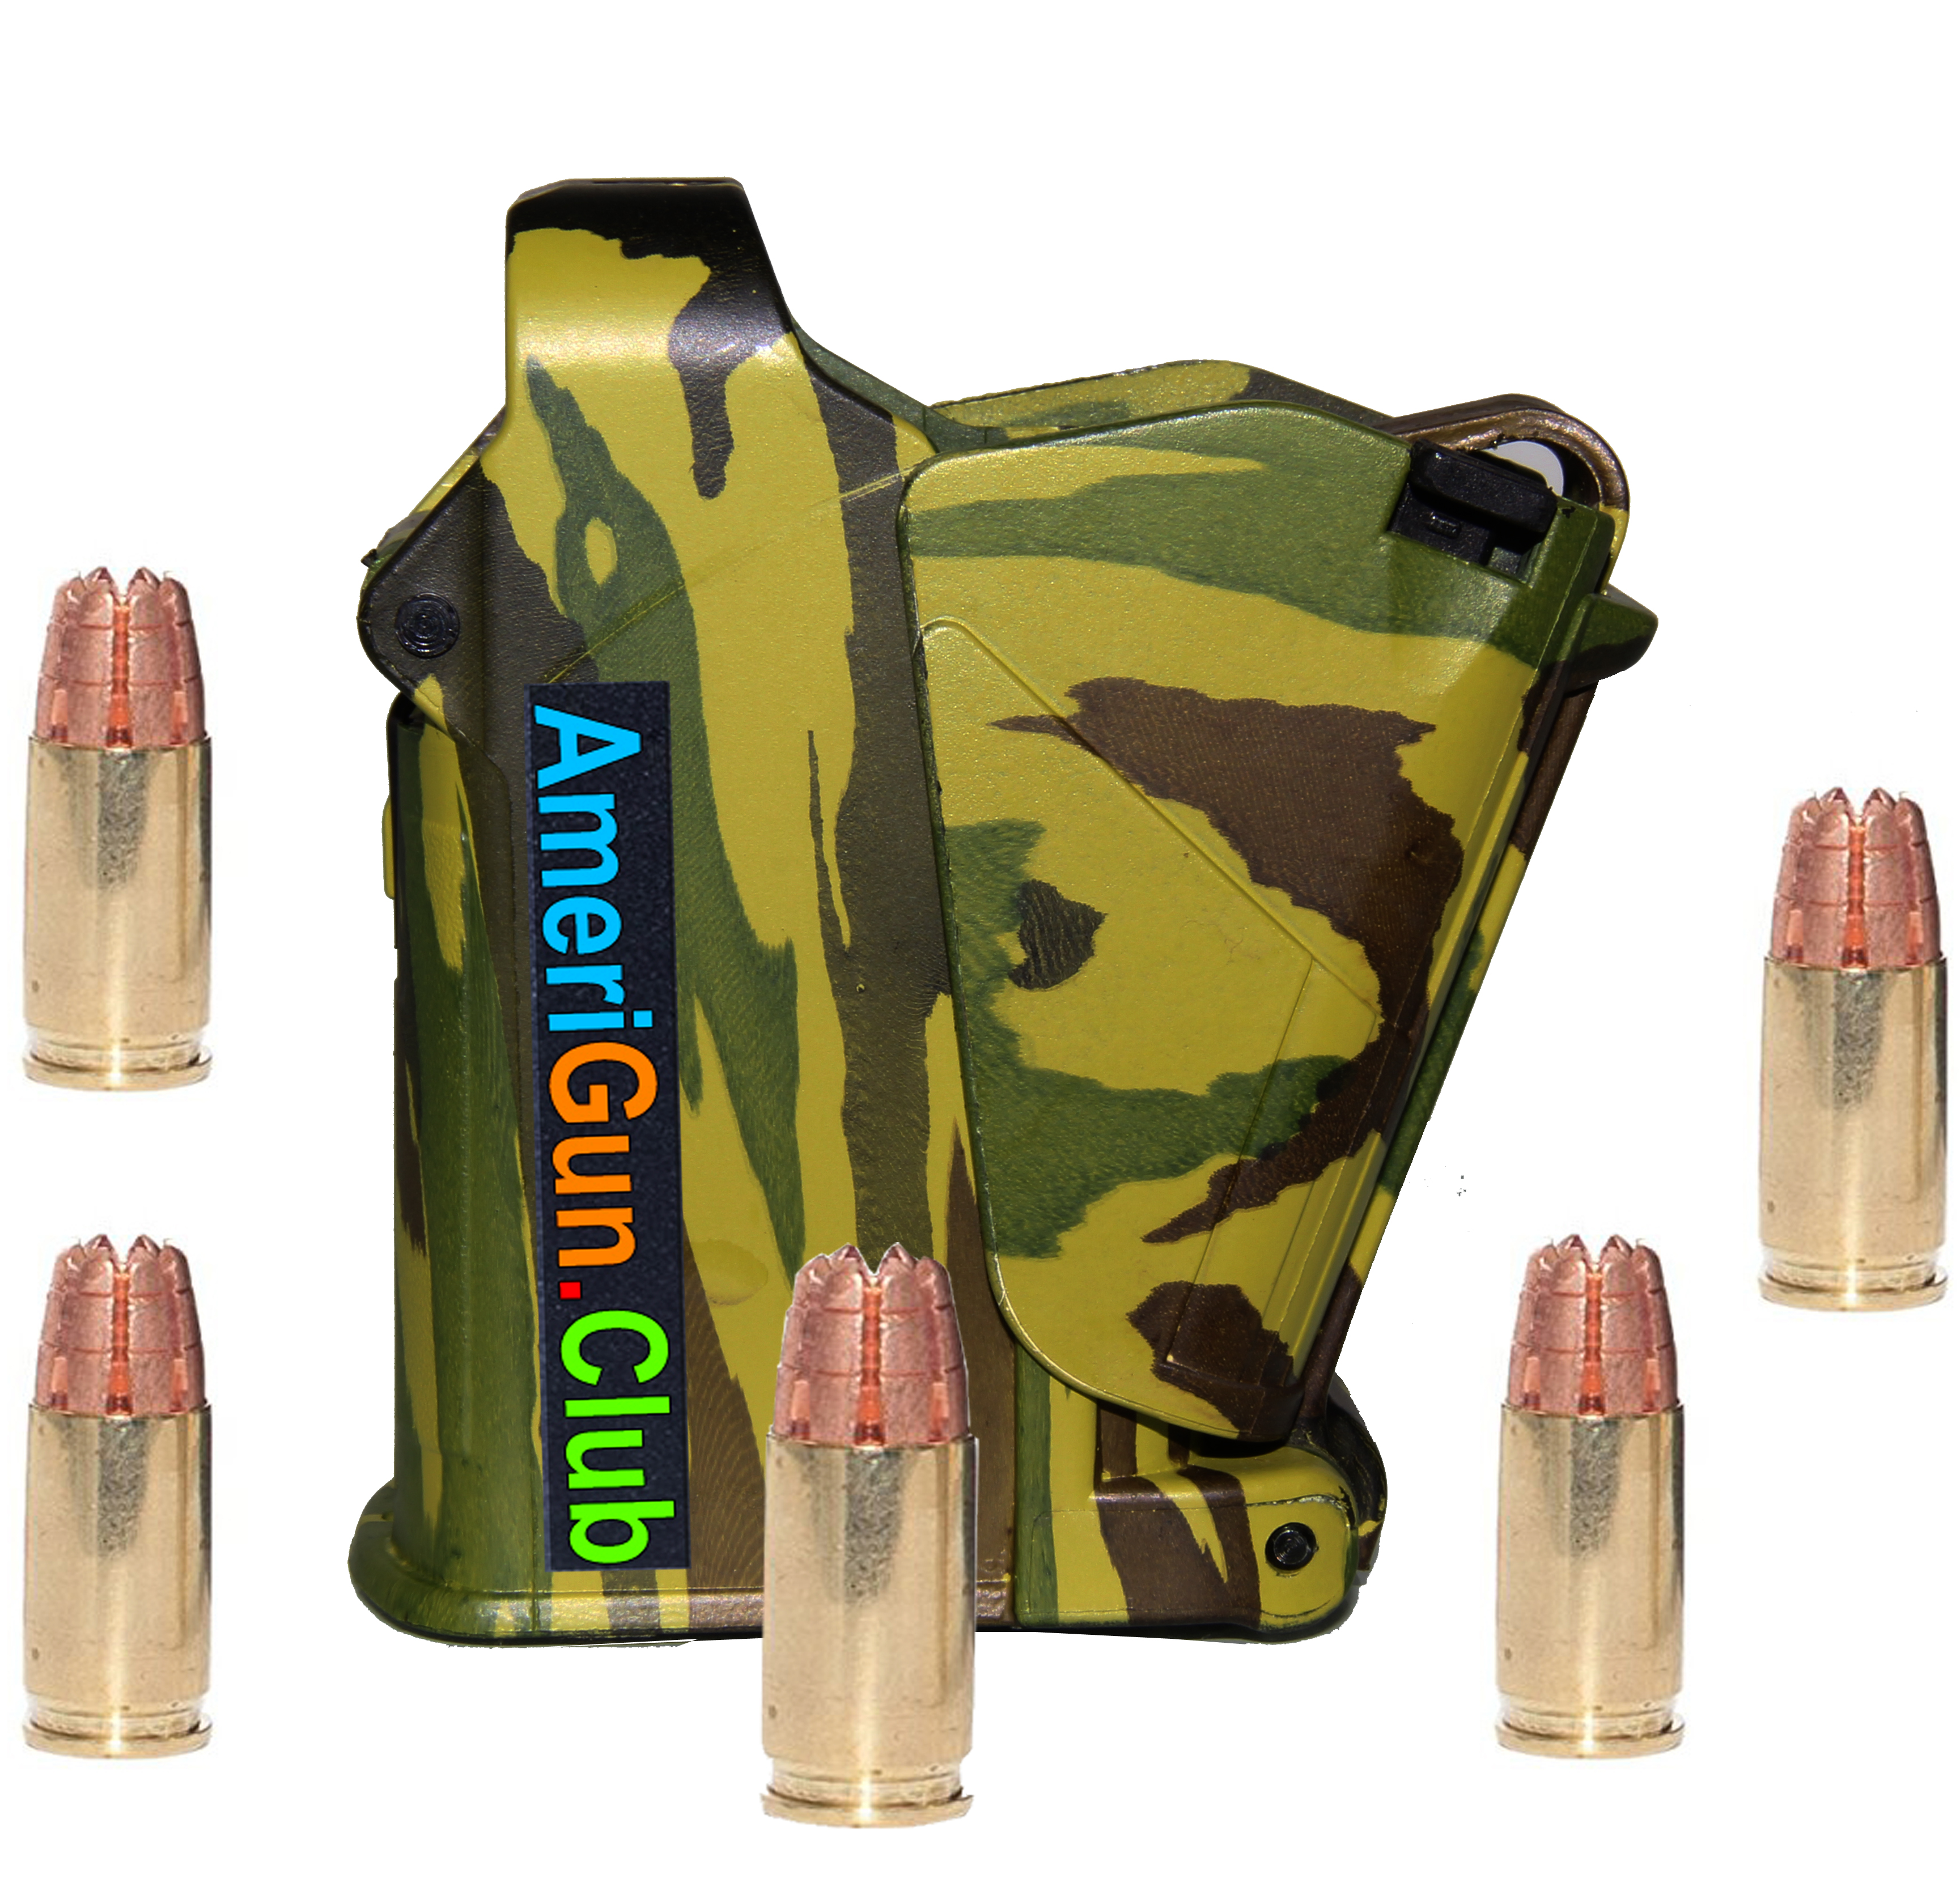 All in one Universal Magazine Speed loader Camouflage